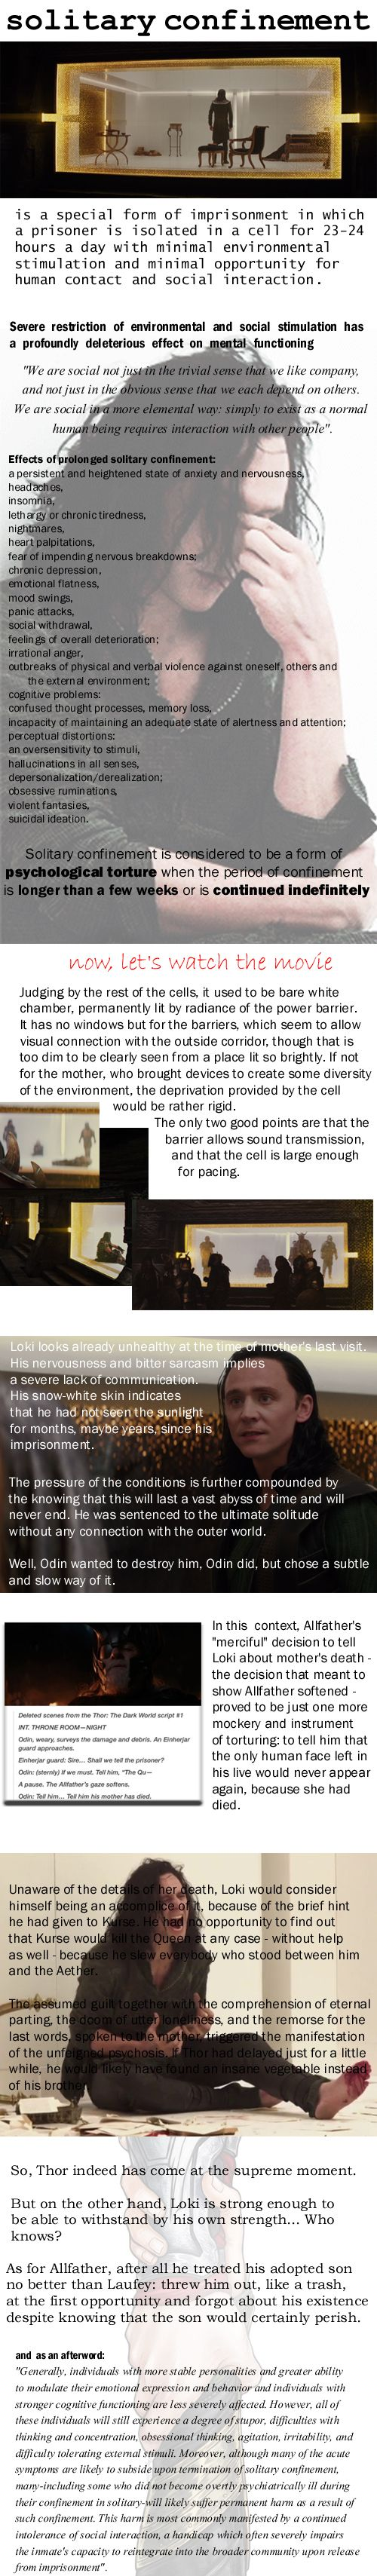 On the imprisonment of Loki and how psychologically damaging Odin's punishment is.